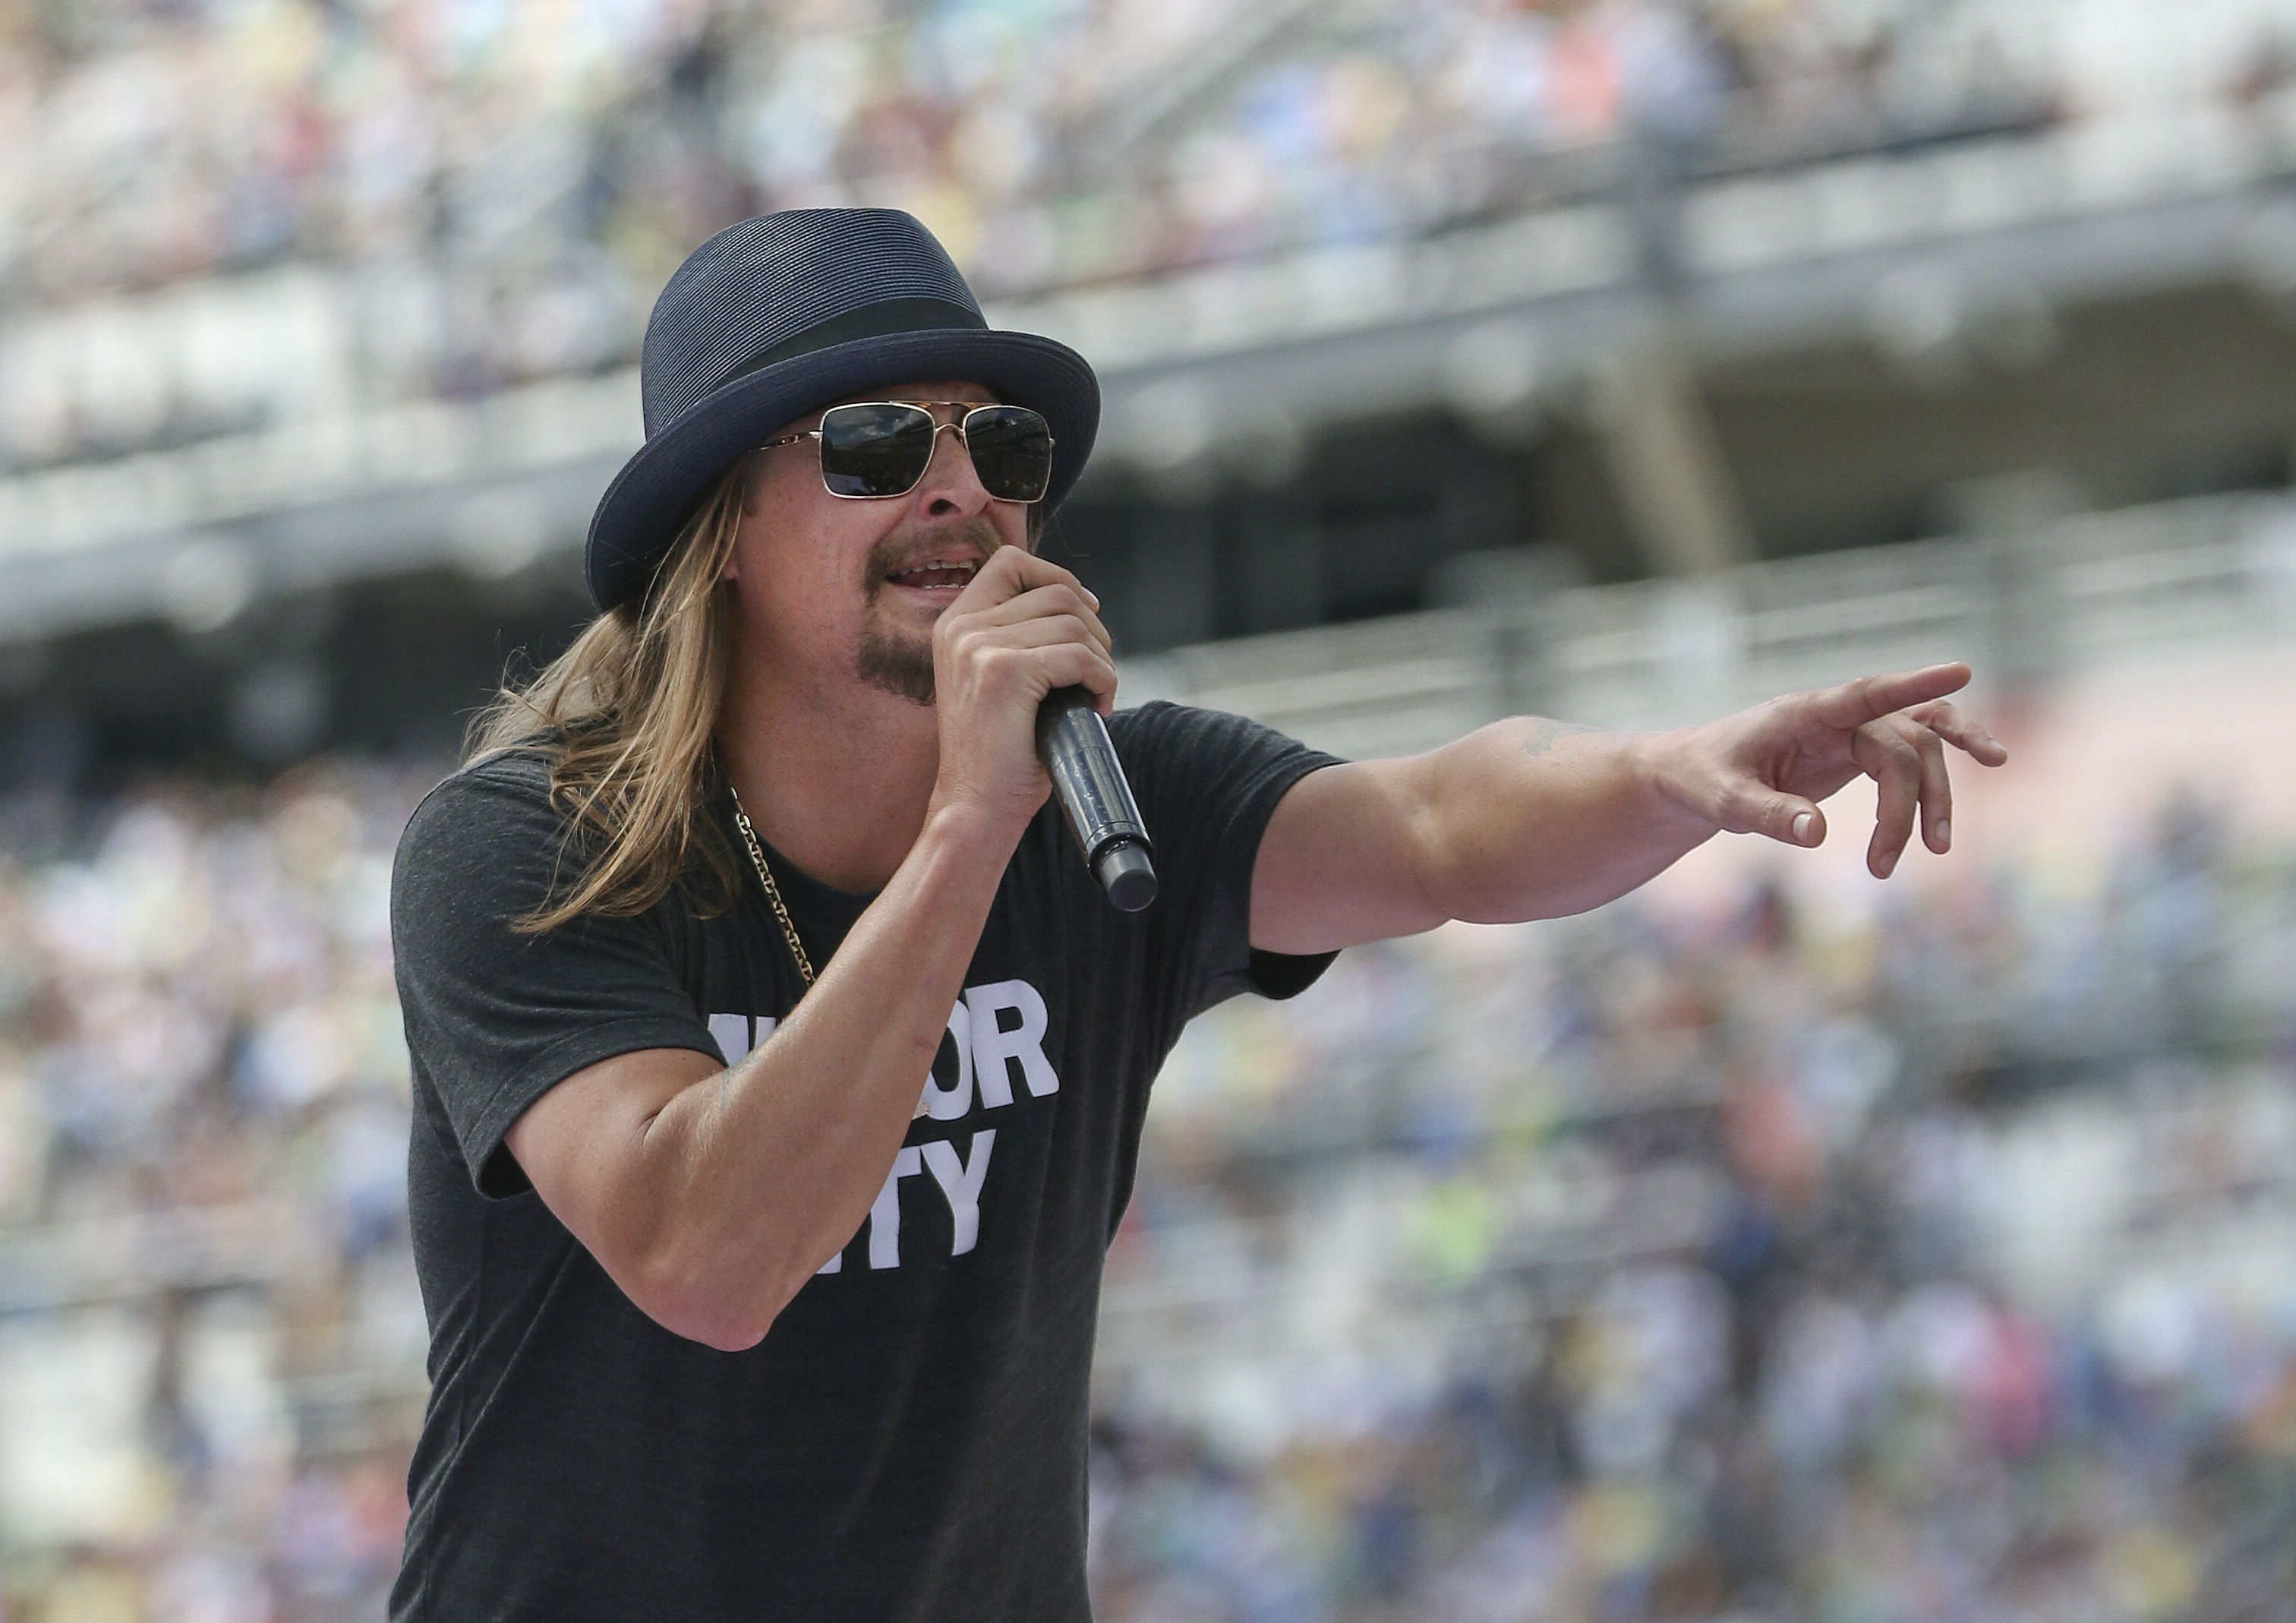 In this photo taken Feb. 22, 2015, singer Kid Rock performs a concert before the Daytona 500 auto race in Daytona Beach, Fla.  (AP Photo/Reinhold Matay)